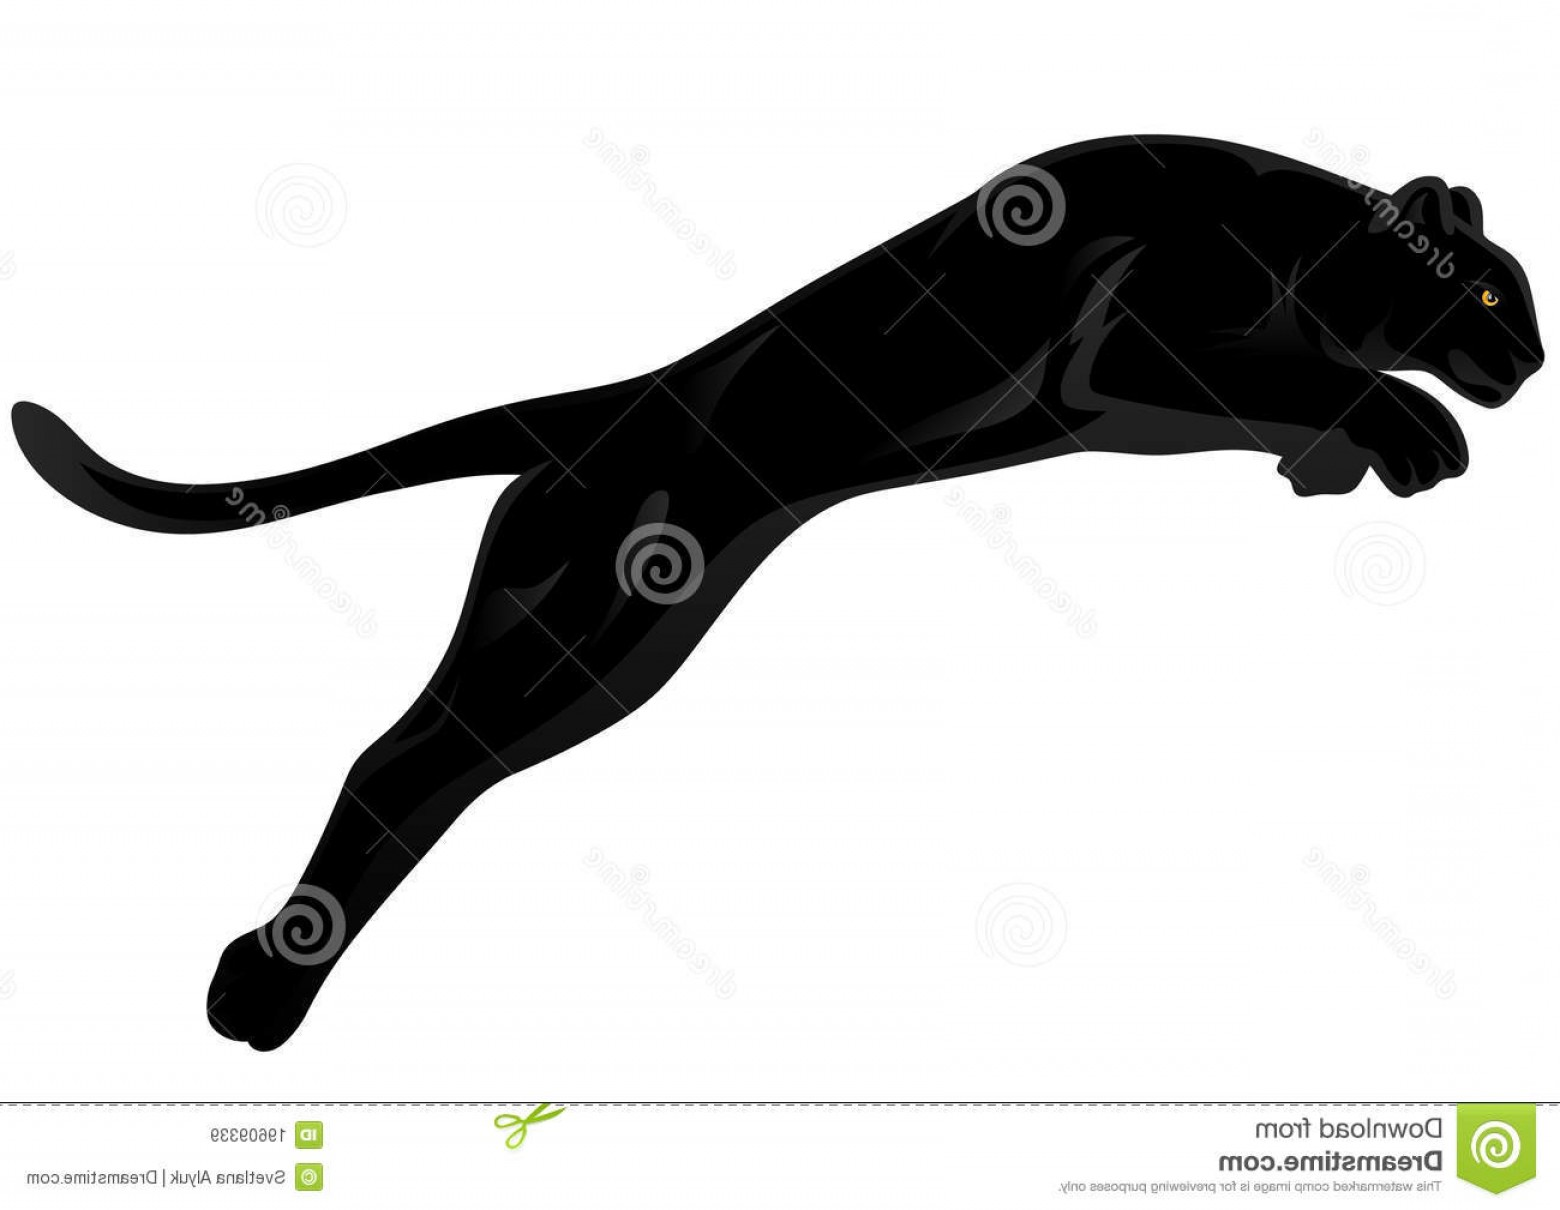 Panther Silhouette Vector: Royalty Free Stock Images Panther Vector Image